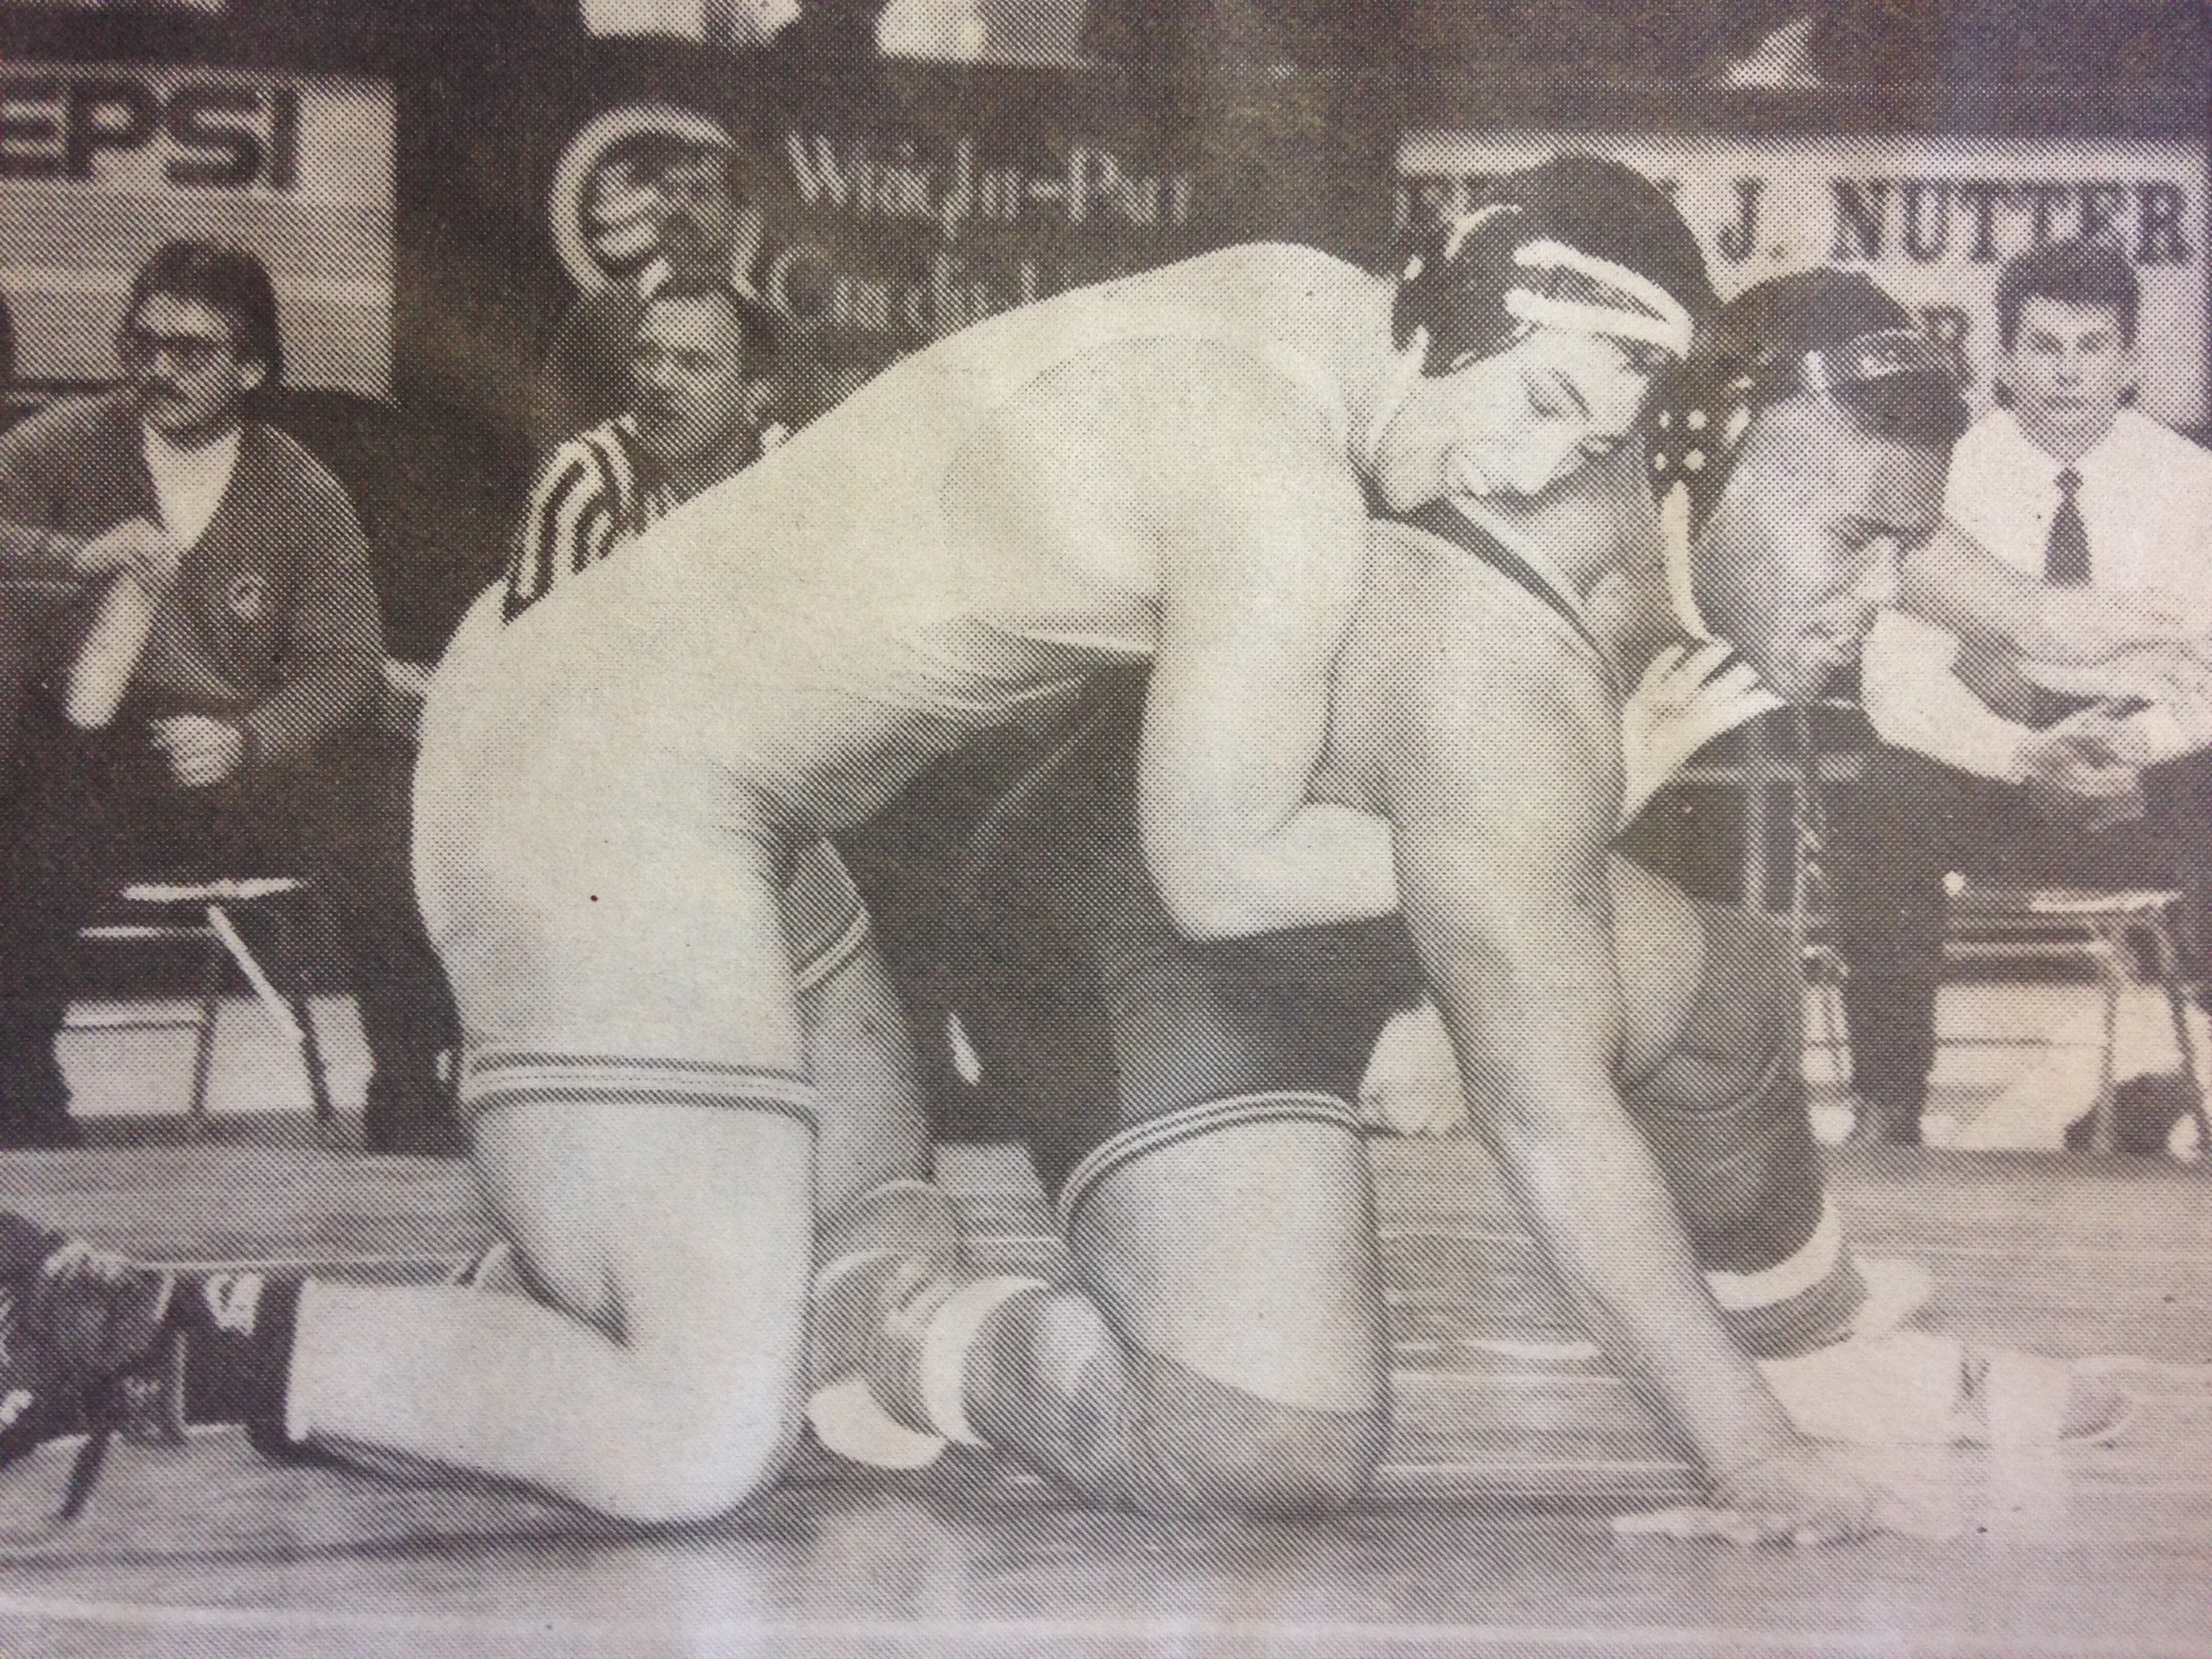 Fickell captured the 1992 State Championship in 54 seconds to win his 107th consecutive match